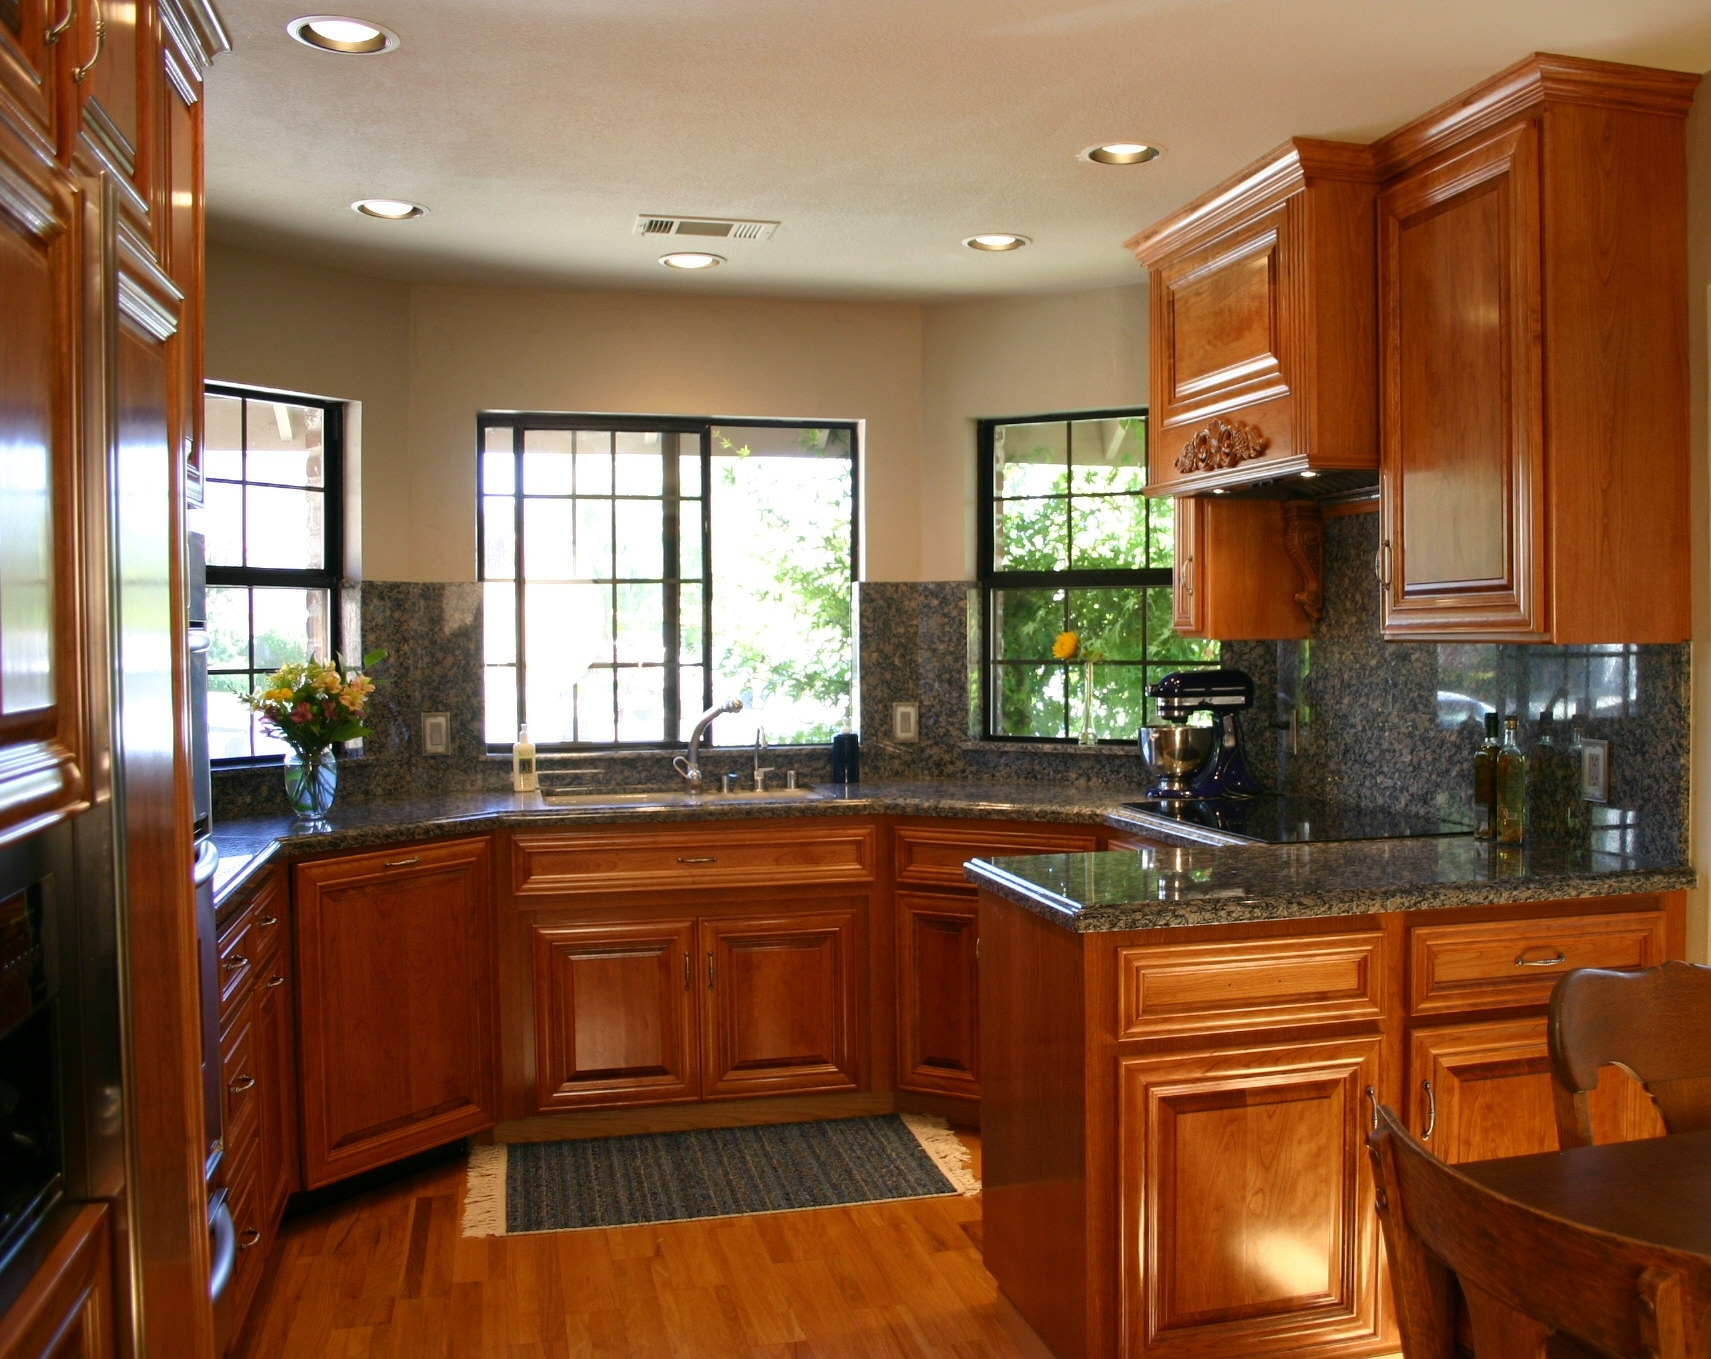 Remodeling Of Kitchen Cabinets